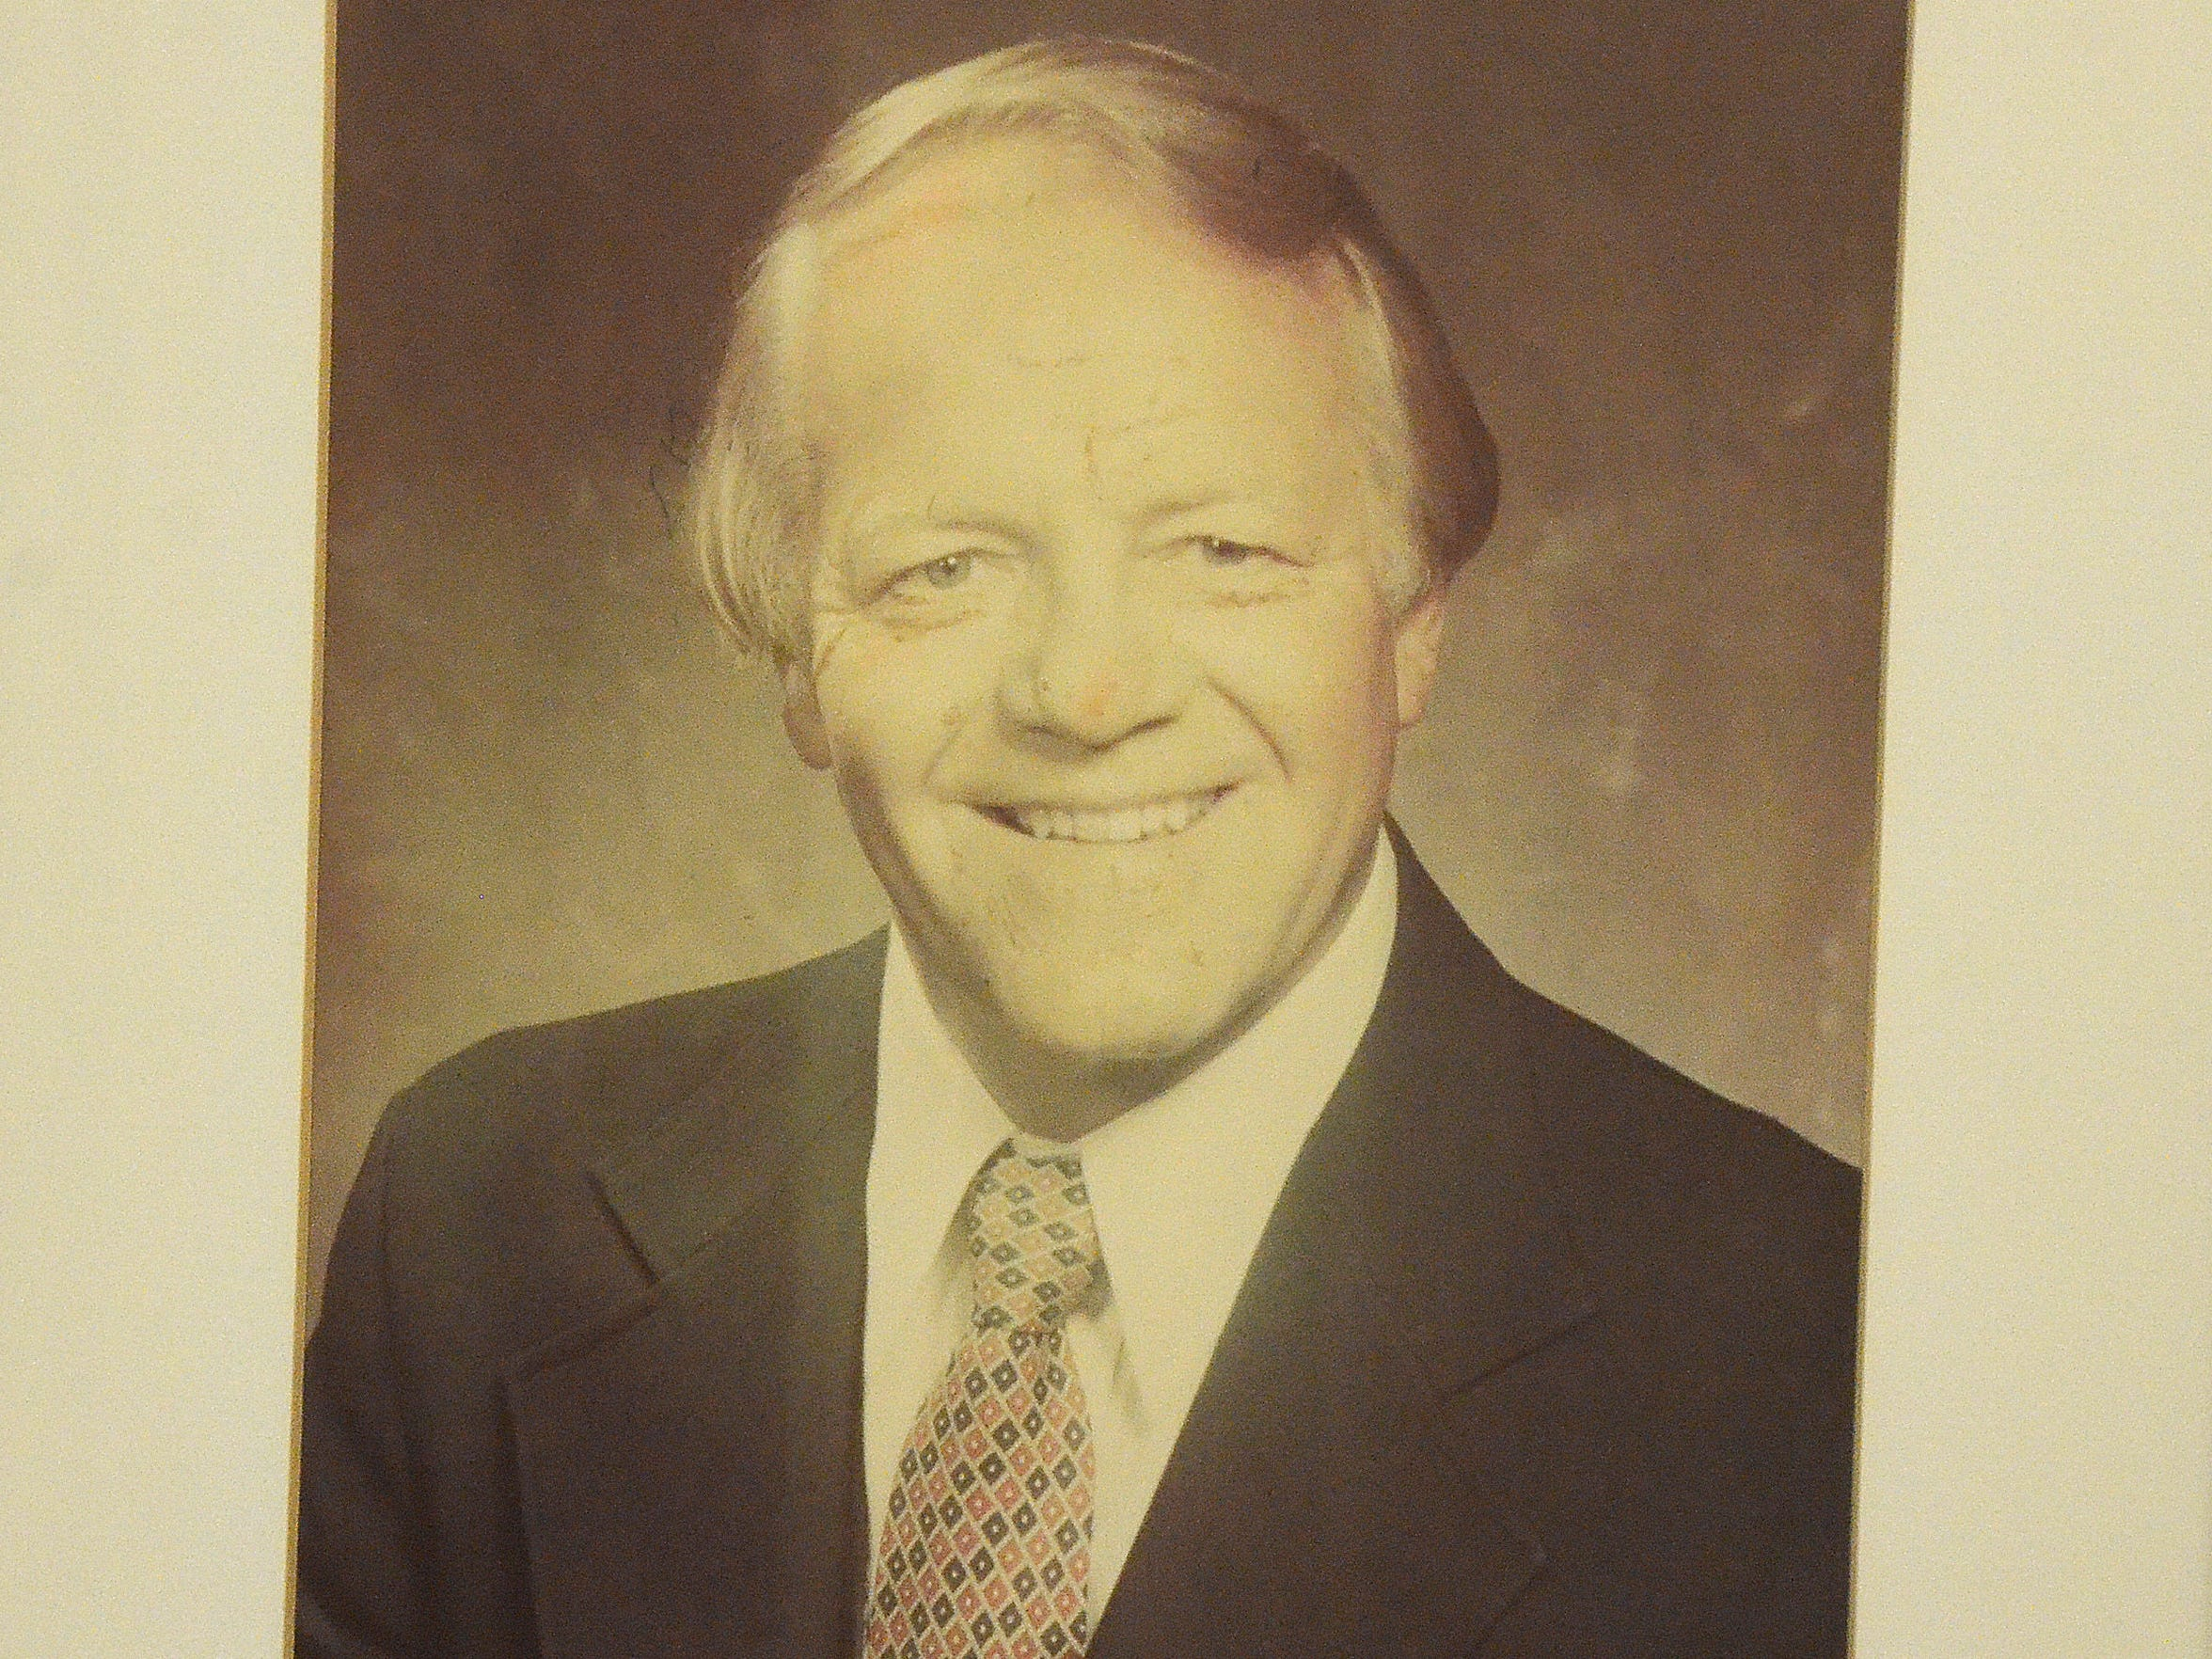 Floyd Oglesby was mayor from 1981-84,  during some